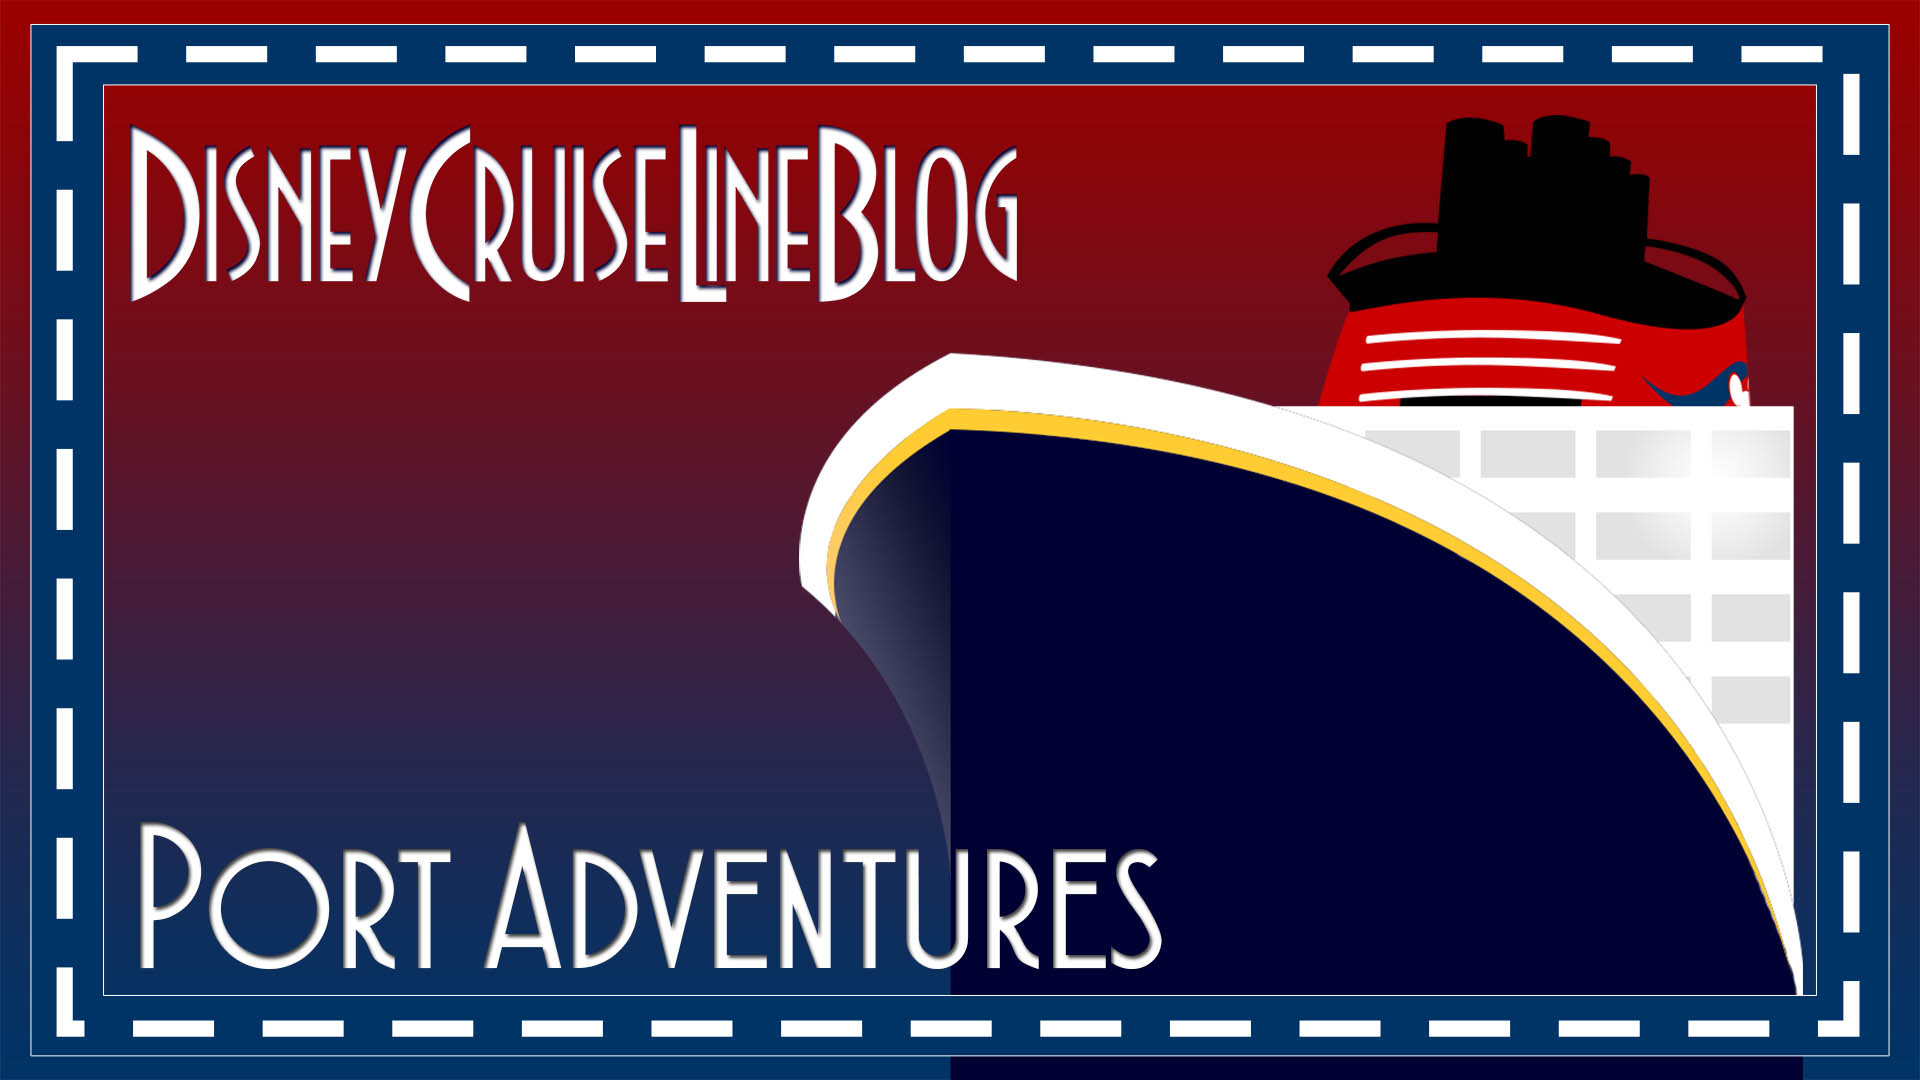 disney cruise 2018 schedule - HD 1920×1080